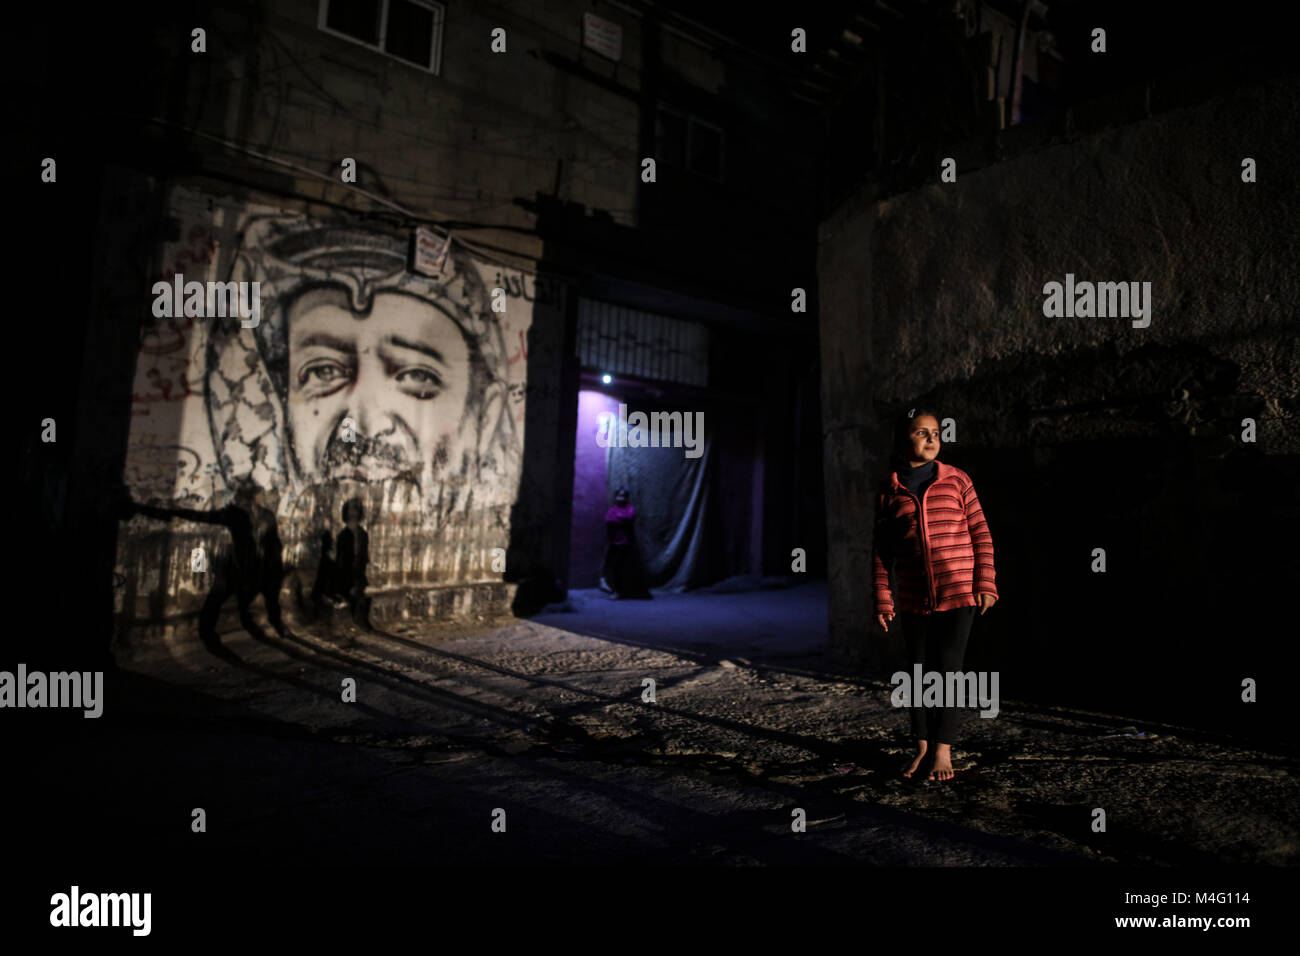 Palestinian girl stands next to a graffiti of late Palestinian leader Yasser Arafat in a dark street during apower - Stock Image